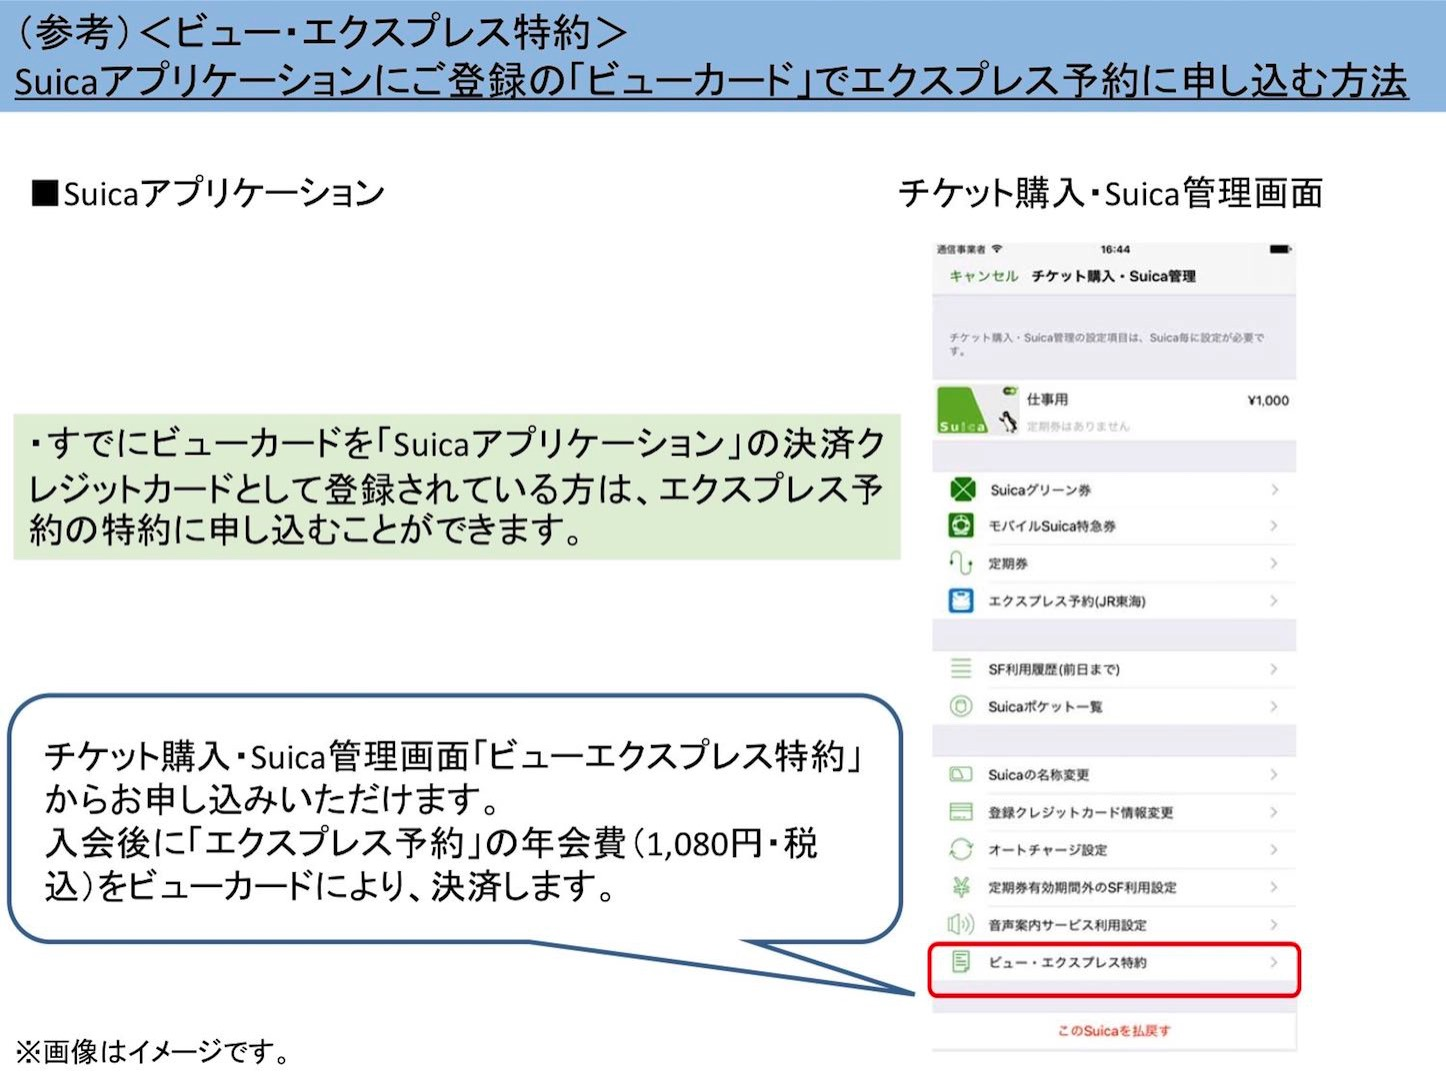 How To Use Suica App for Express IC 1